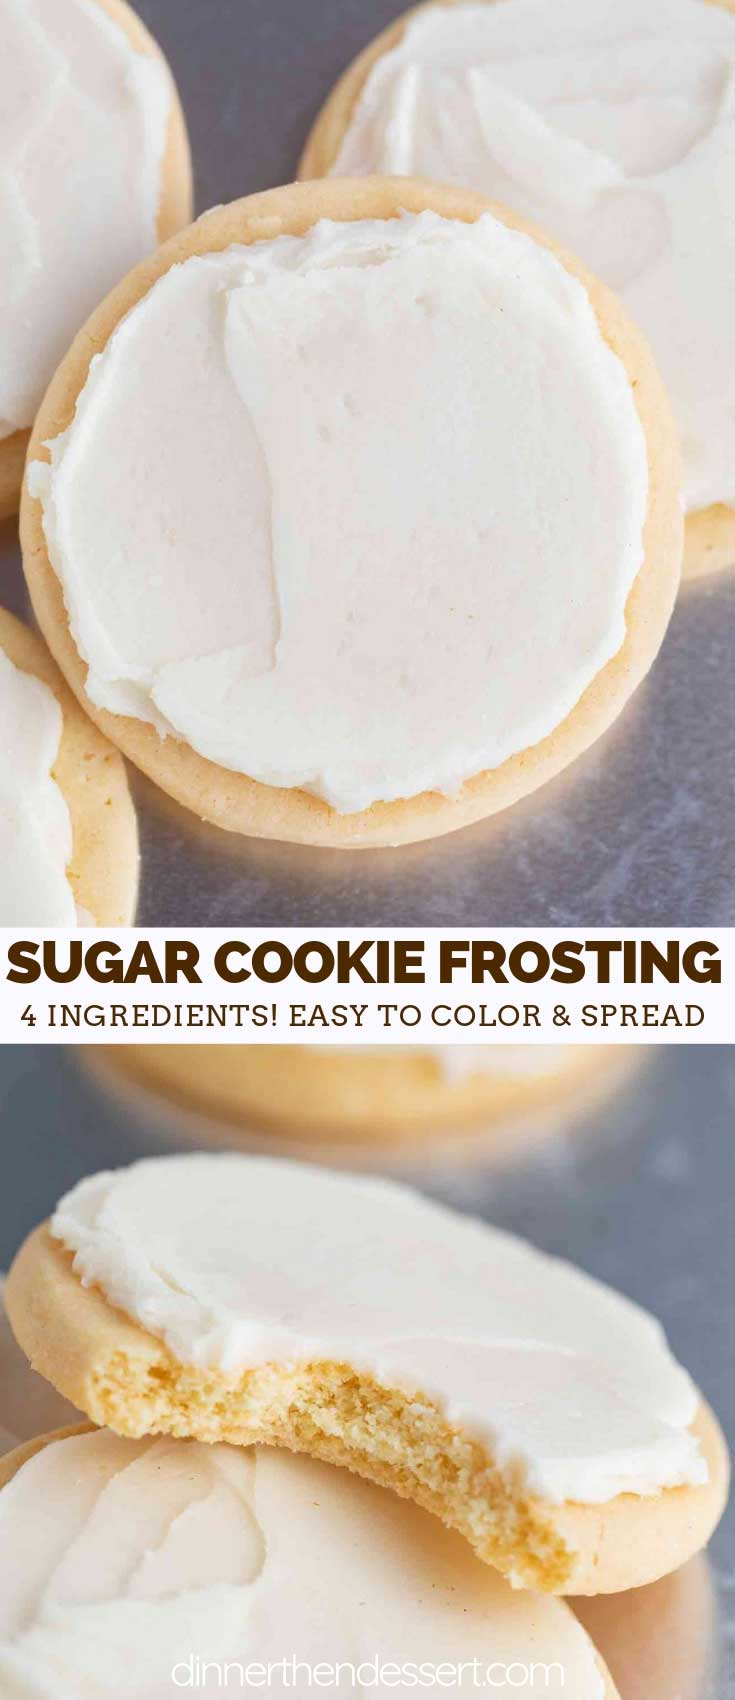 Christmas Cookie Recipes 2019.Sugar Cookie Frosting Dinner Then Dessert